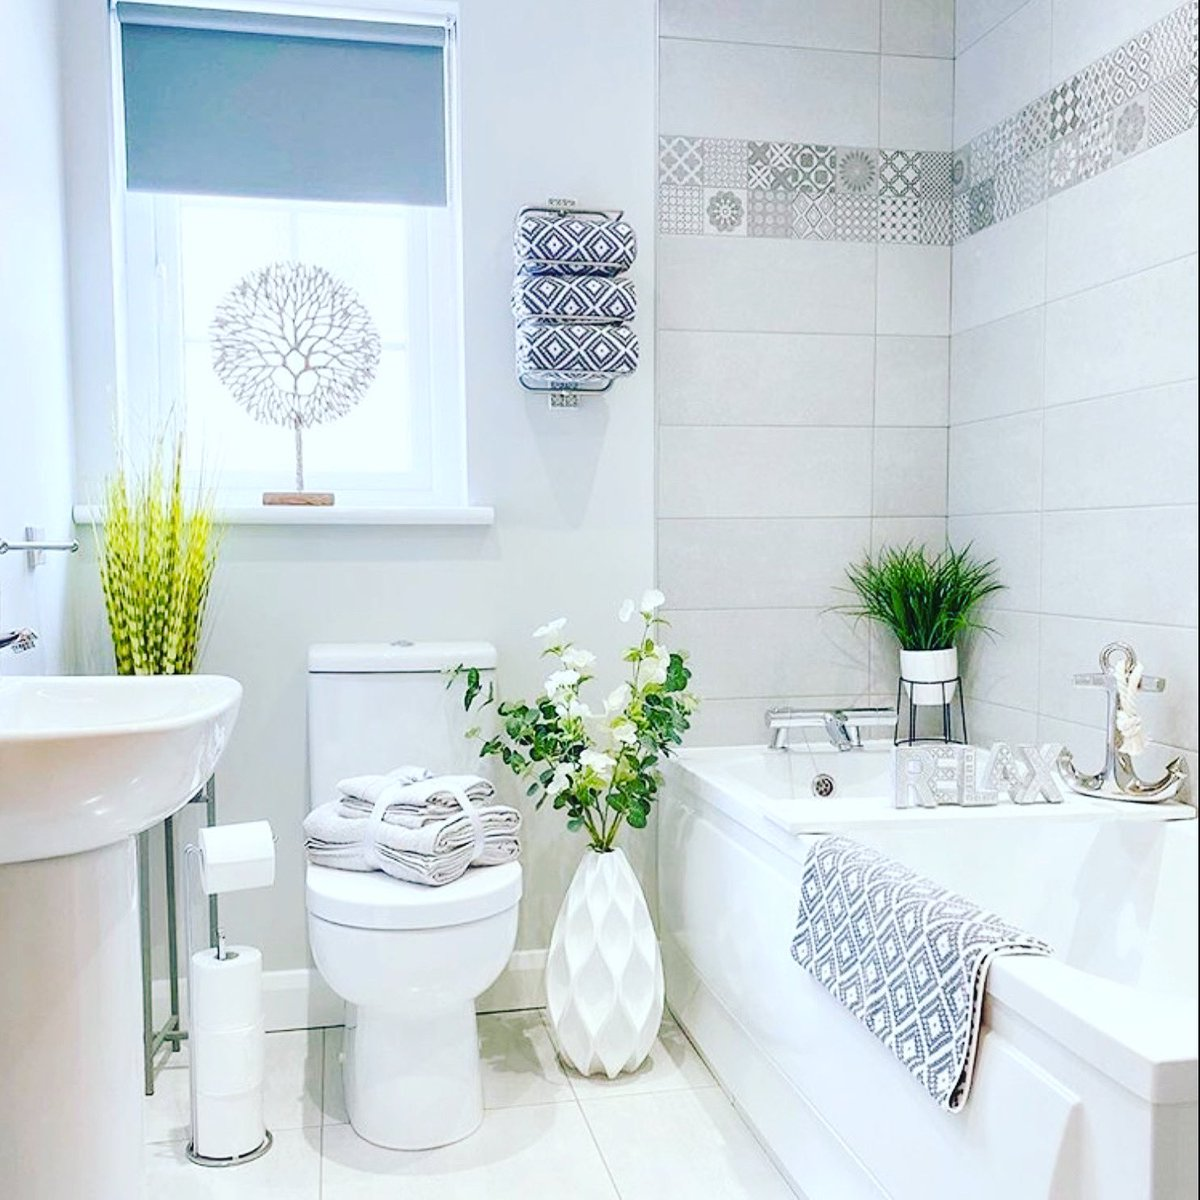 How are you relaxing this weekend? #RealEstate #bathroom #interiordesign pic.twitter.com/dsRtRFbhYQ